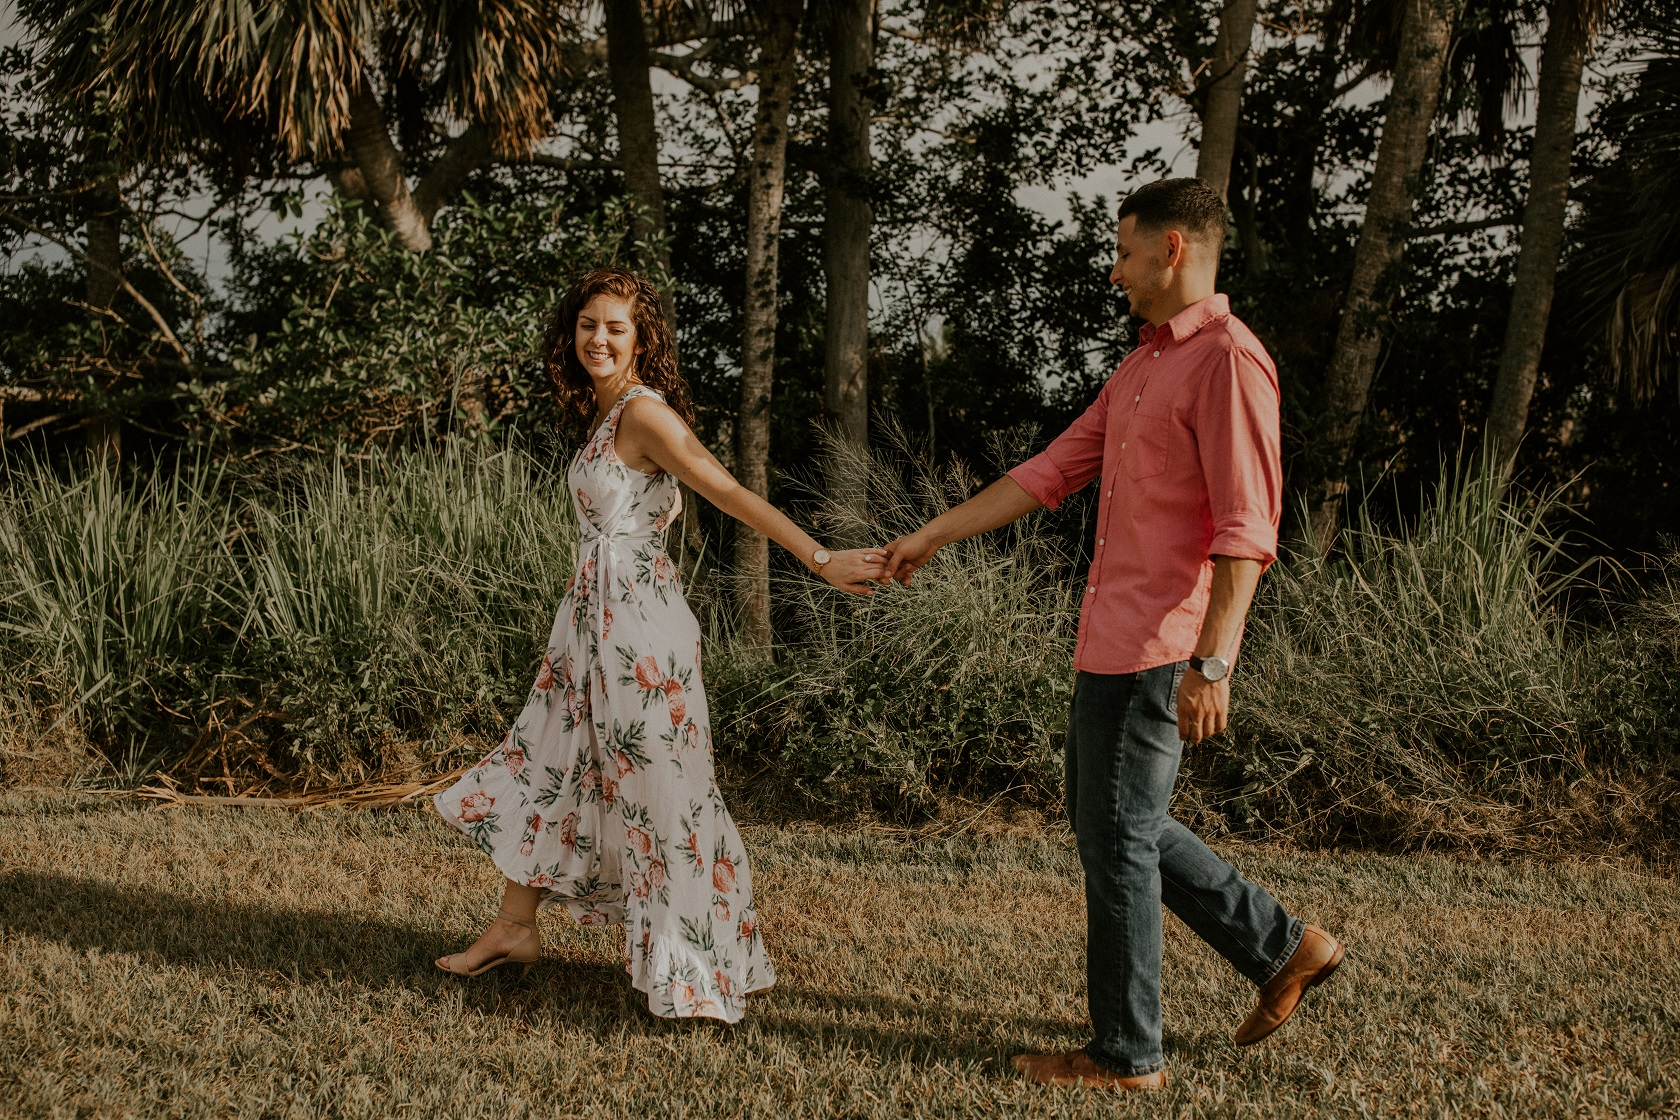 Vero Beach Florida-Engagement Session-Michelle and Jeff-4.jpg